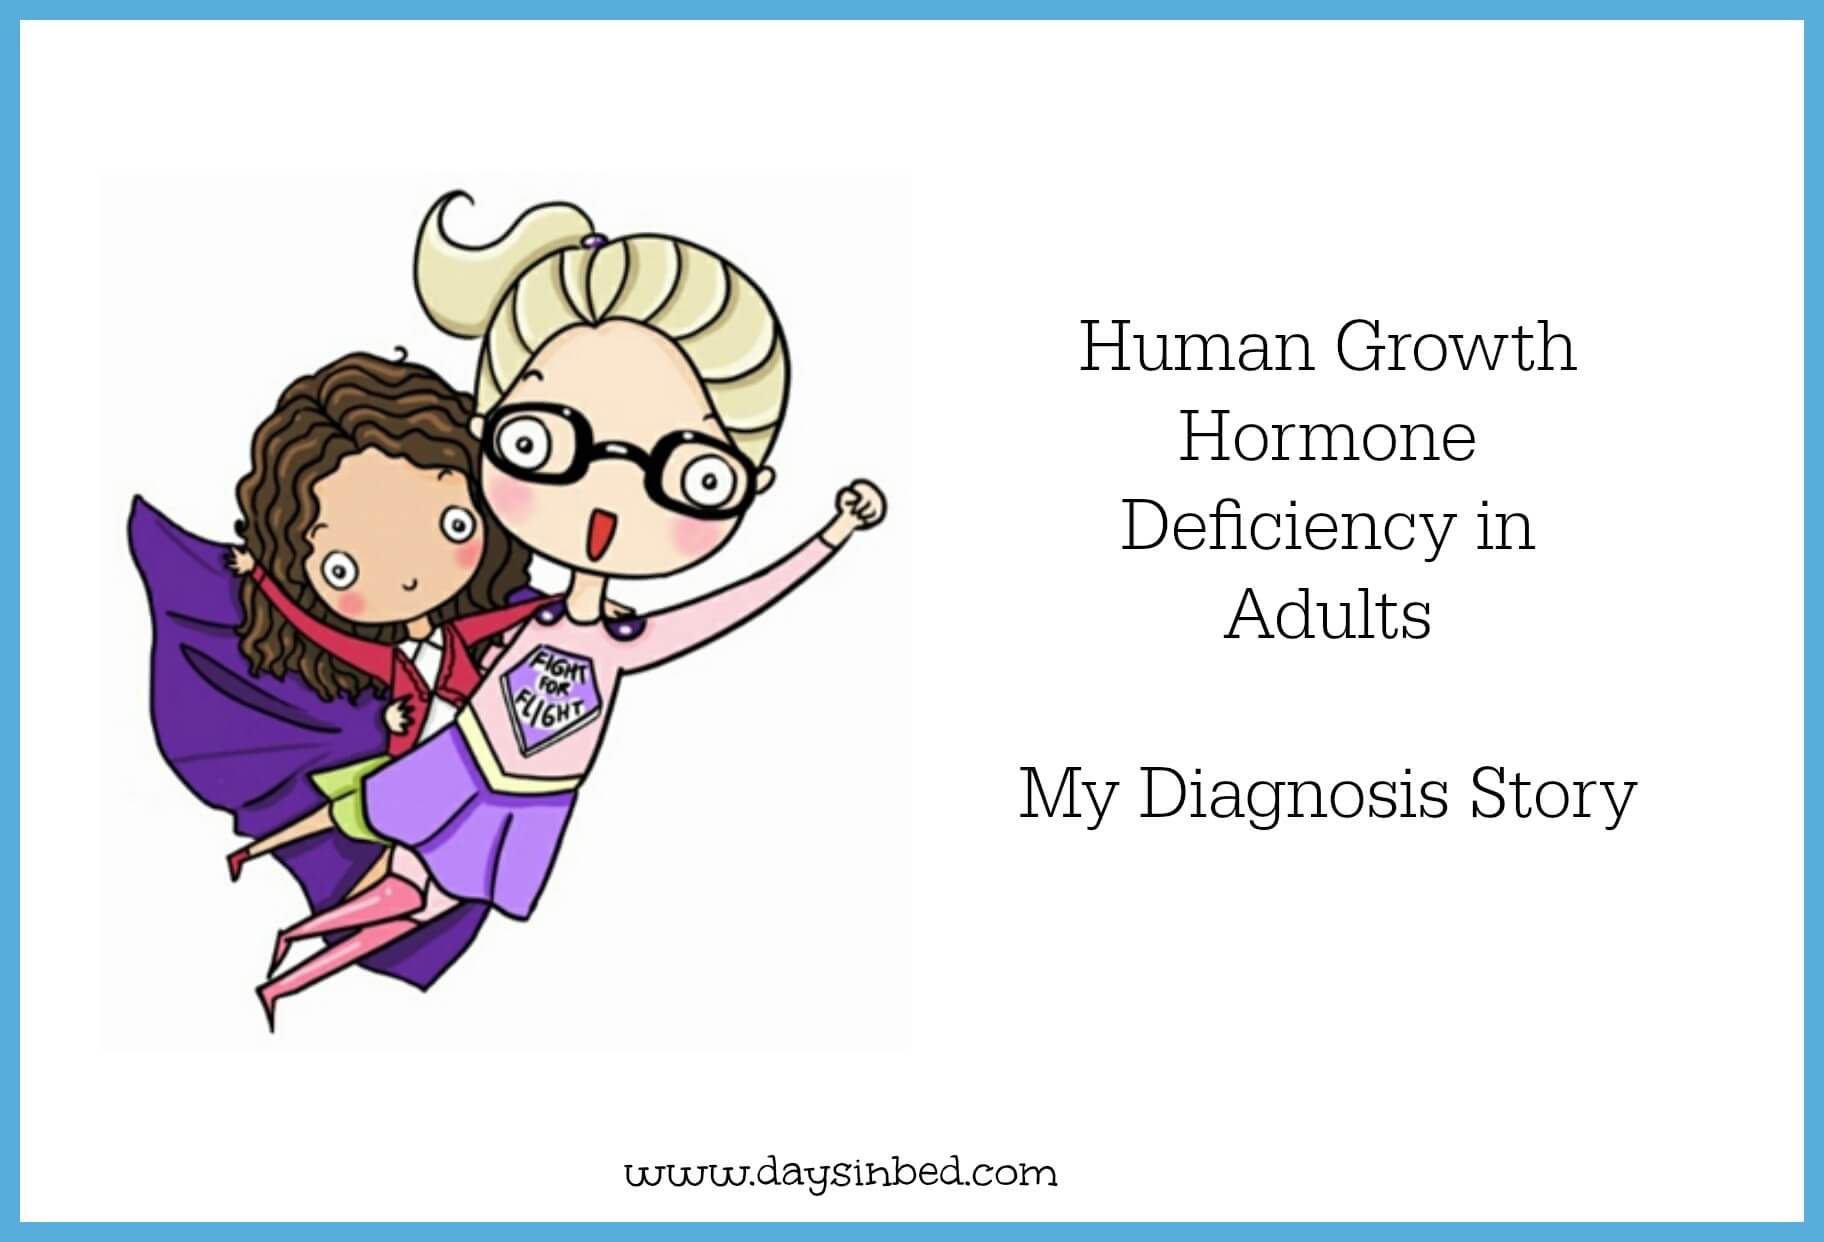 Words... super, Growth hormone disorders in adults was